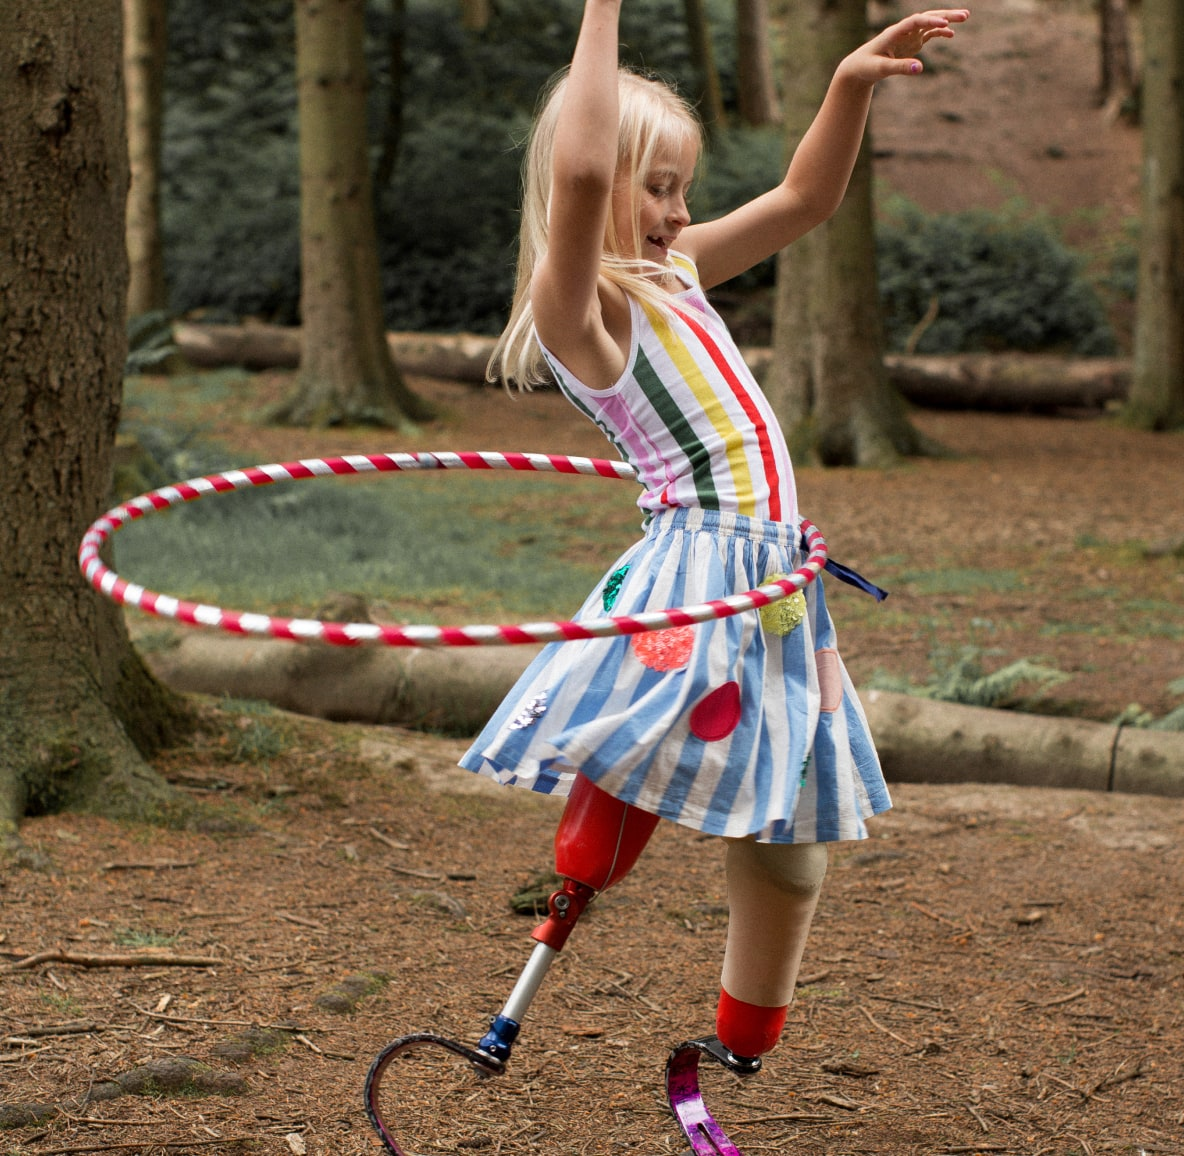 Young girl with prosthetic legs wearing striped skirt and leotard playing with a hula hoop